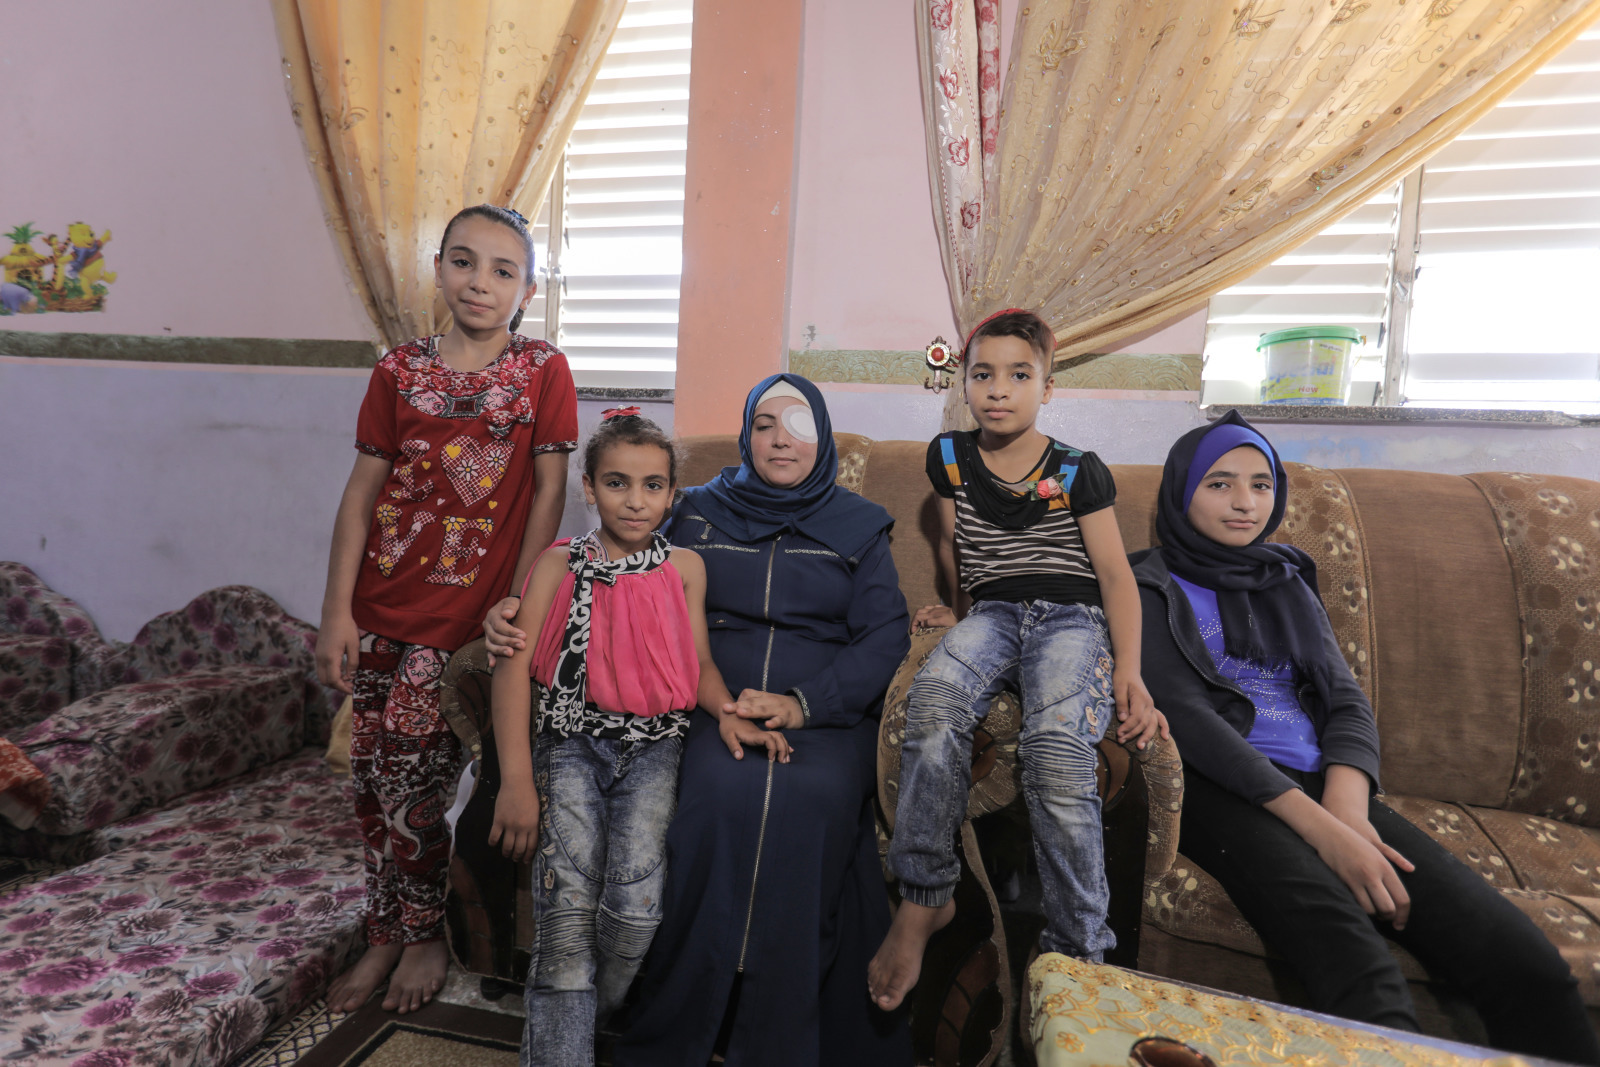 c_HI__Zena_and_her_children_in_Gaza.jpg